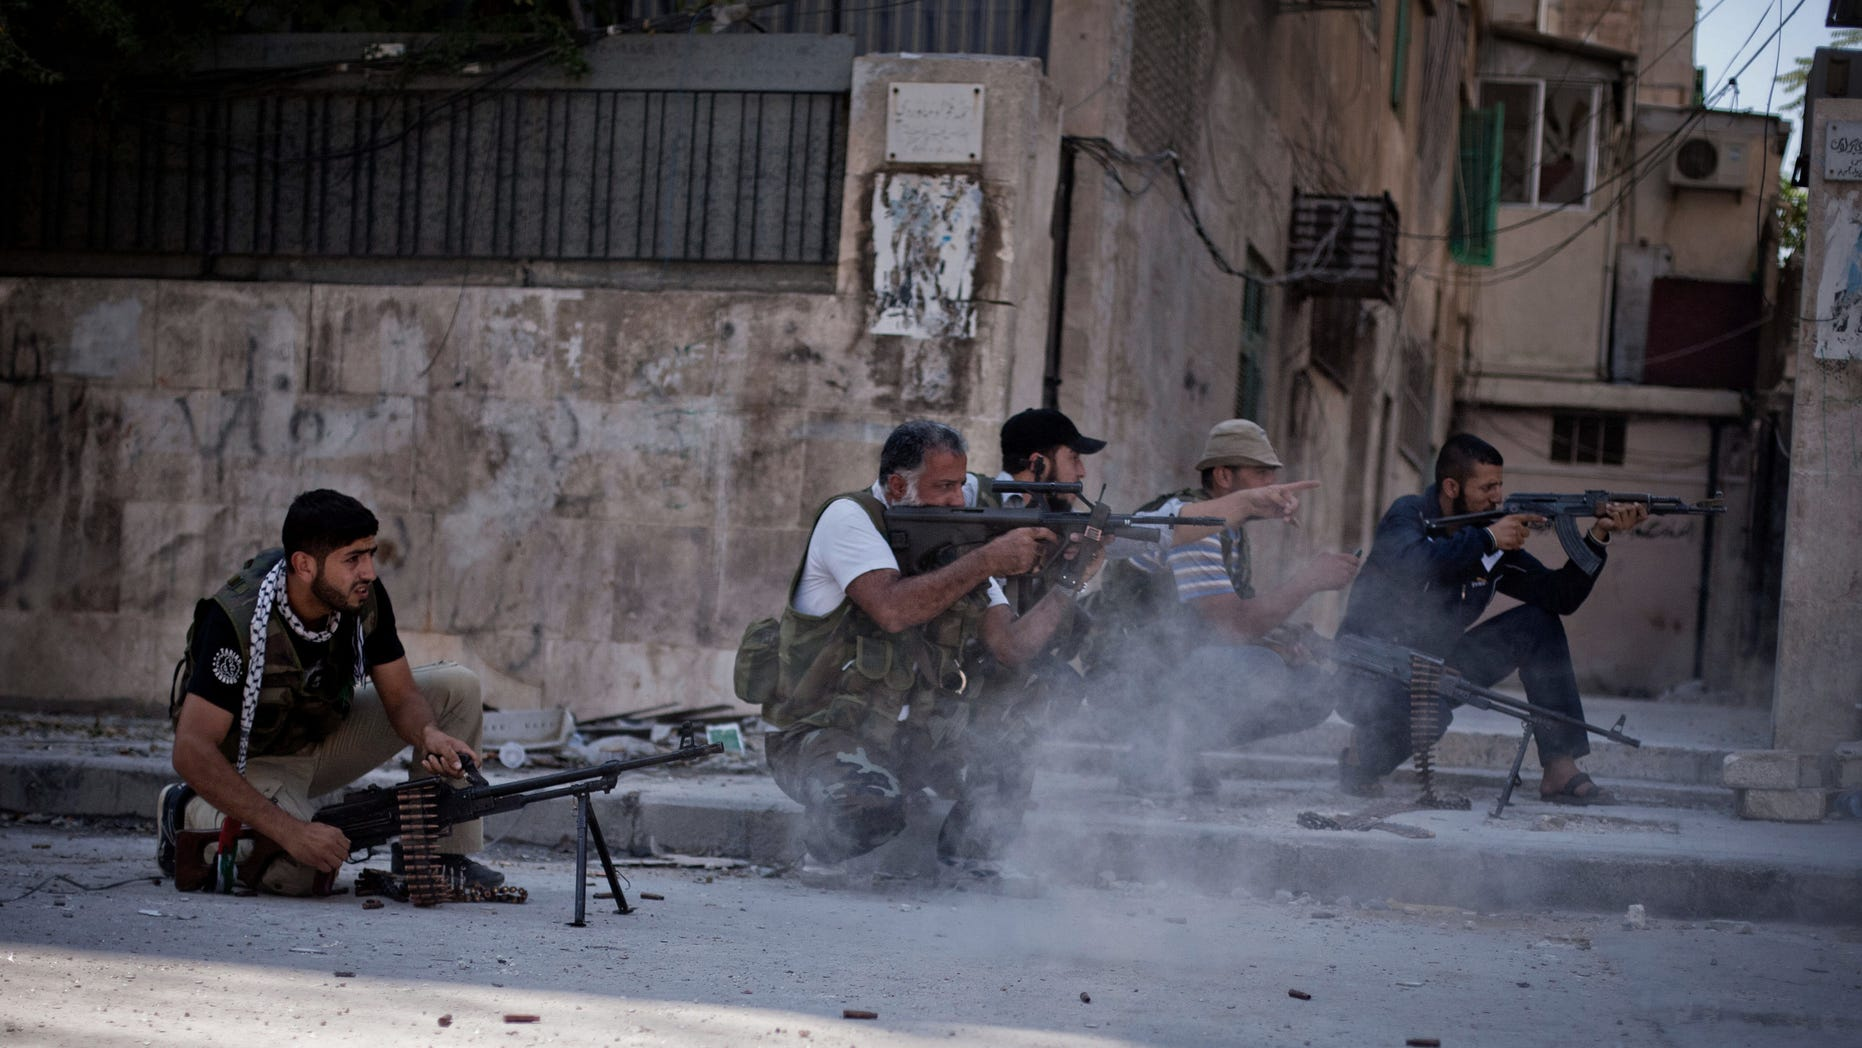 In this Saturday, Sept 8, 2012 photo, Free Syrian Army soldiers shoot their weapons towards Syrian Army positions in the Izaa district of Aleppo, Syria. Syrian activists say President Bashar Assad's regime pounded Aleppo with warplanes and artillery shelling Saturday as ground forces seeking to regain momentum in the country's largest city advanced on three neighborhoods. (AP Photo/Manu Brabo)